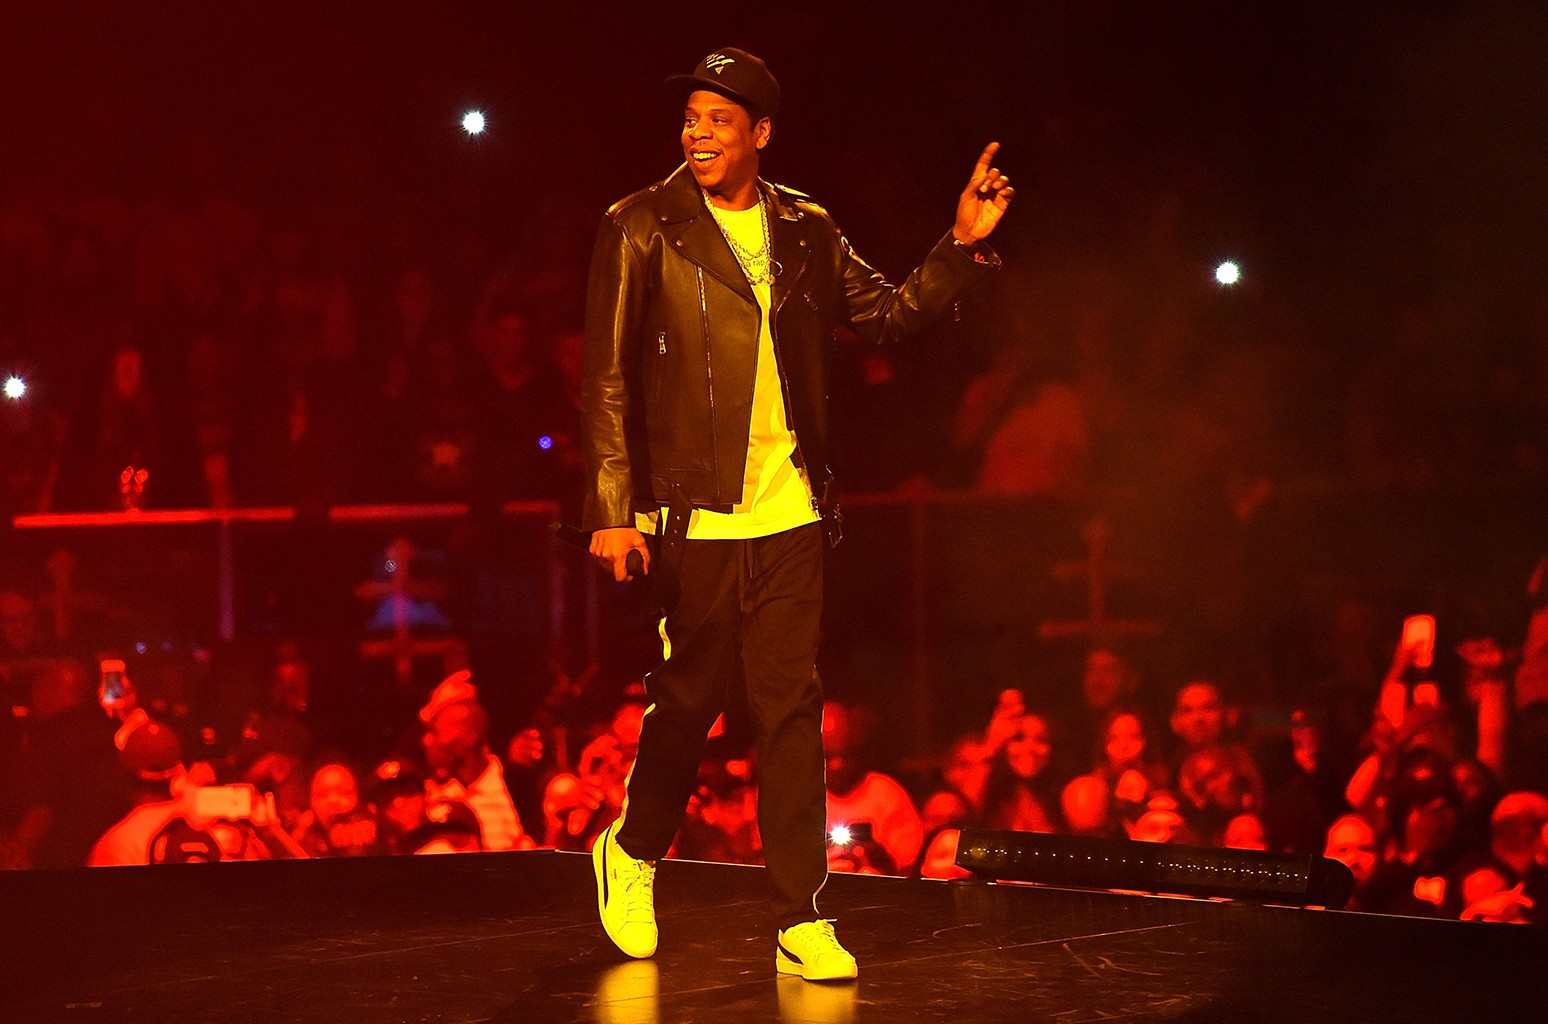 grammys 2018 see the complete list of nominees billboard grammys 2018 see the complete list of